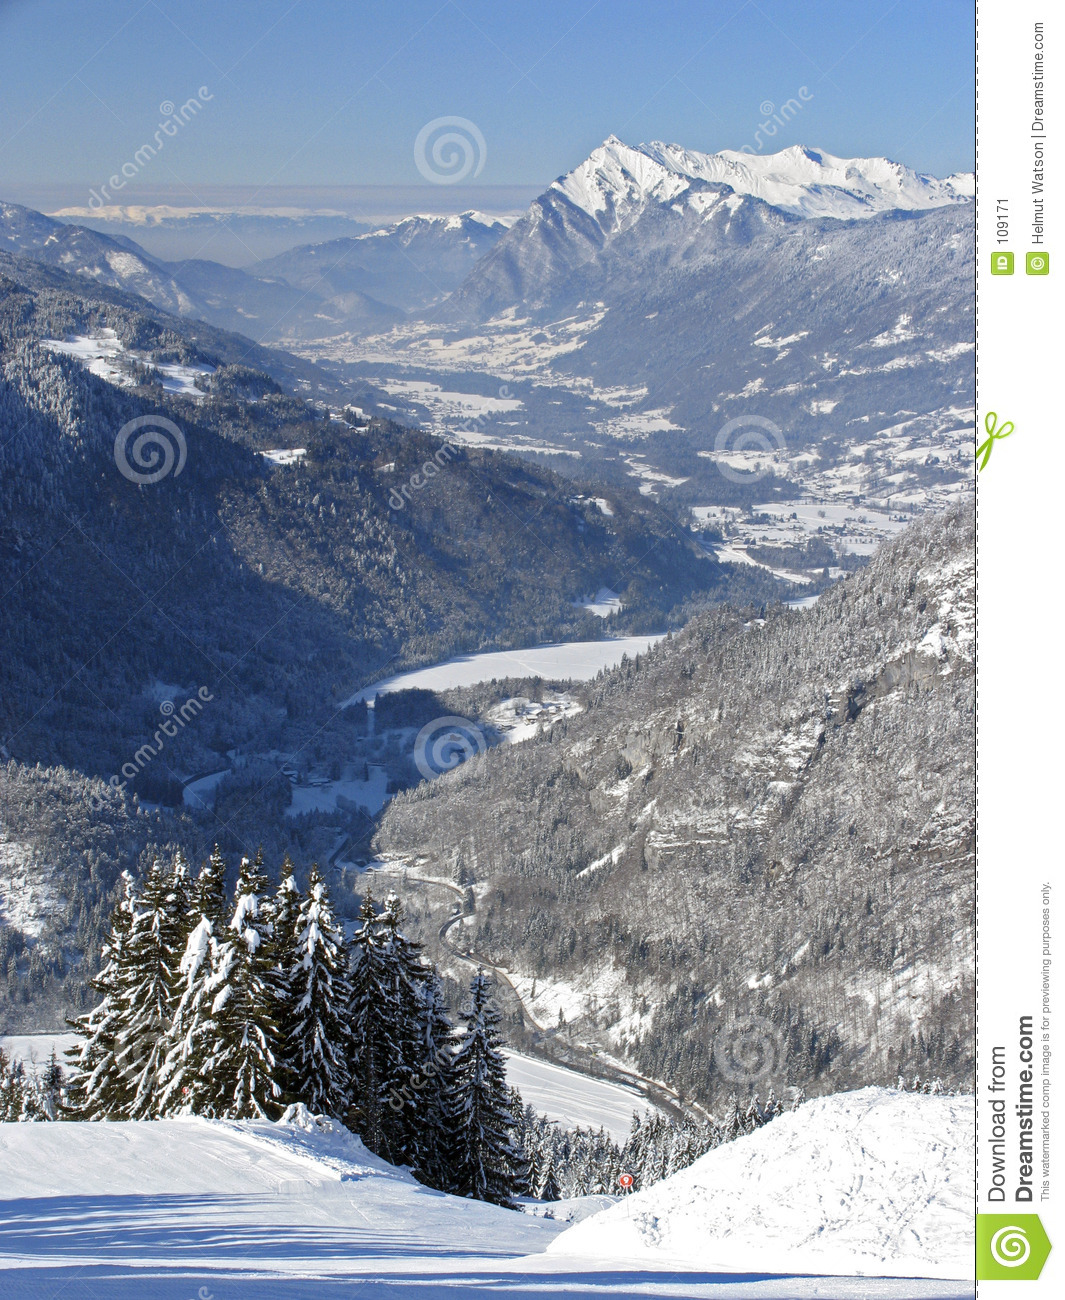 Flaine - Valley view